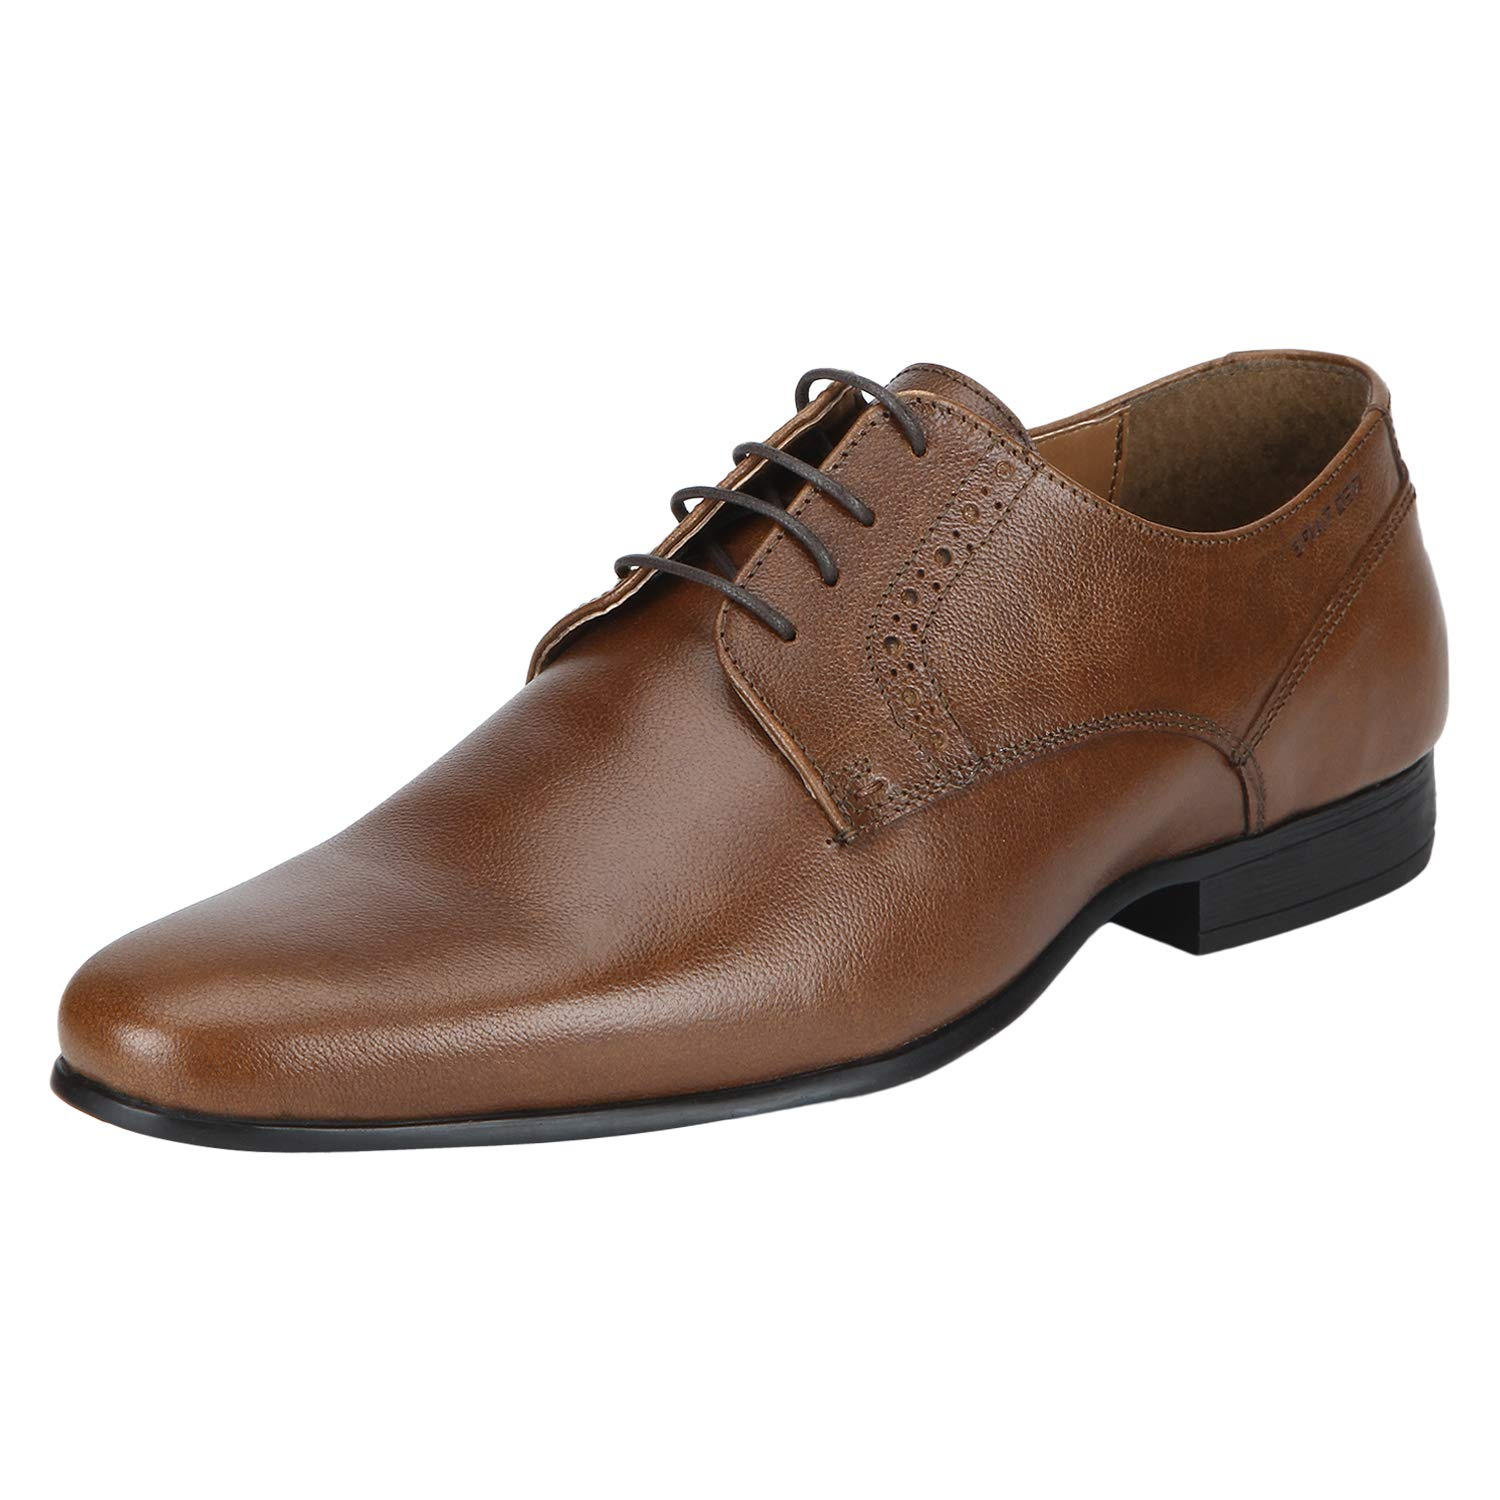 Red Tape Men's Tan Leather Formal Shoes